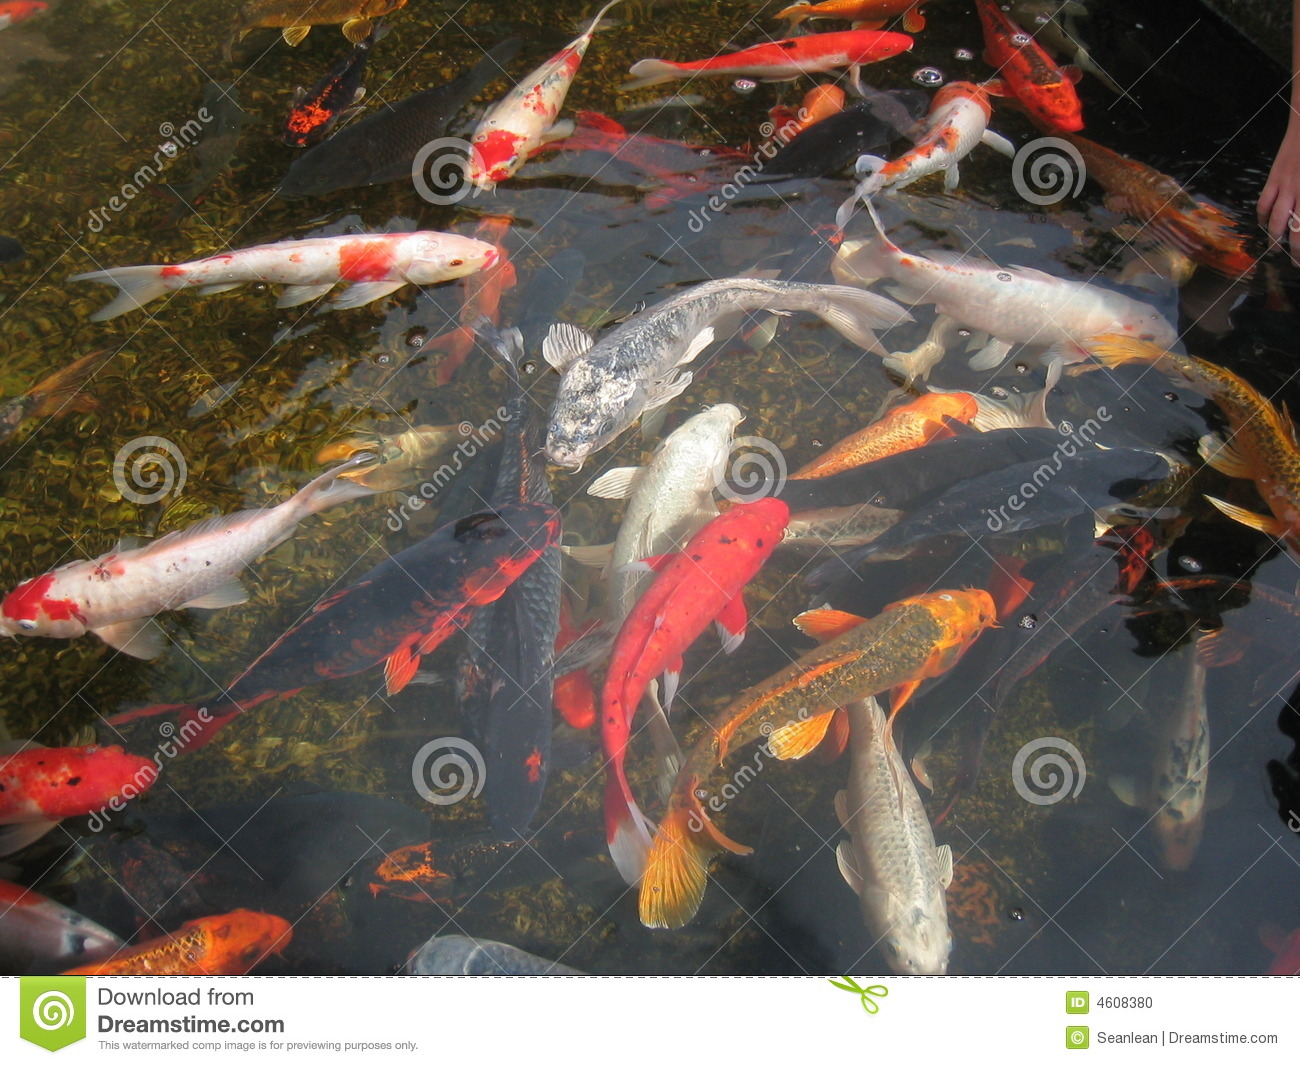 Koi fish in pond stock photo image 4608380 for Japan koi fish pond